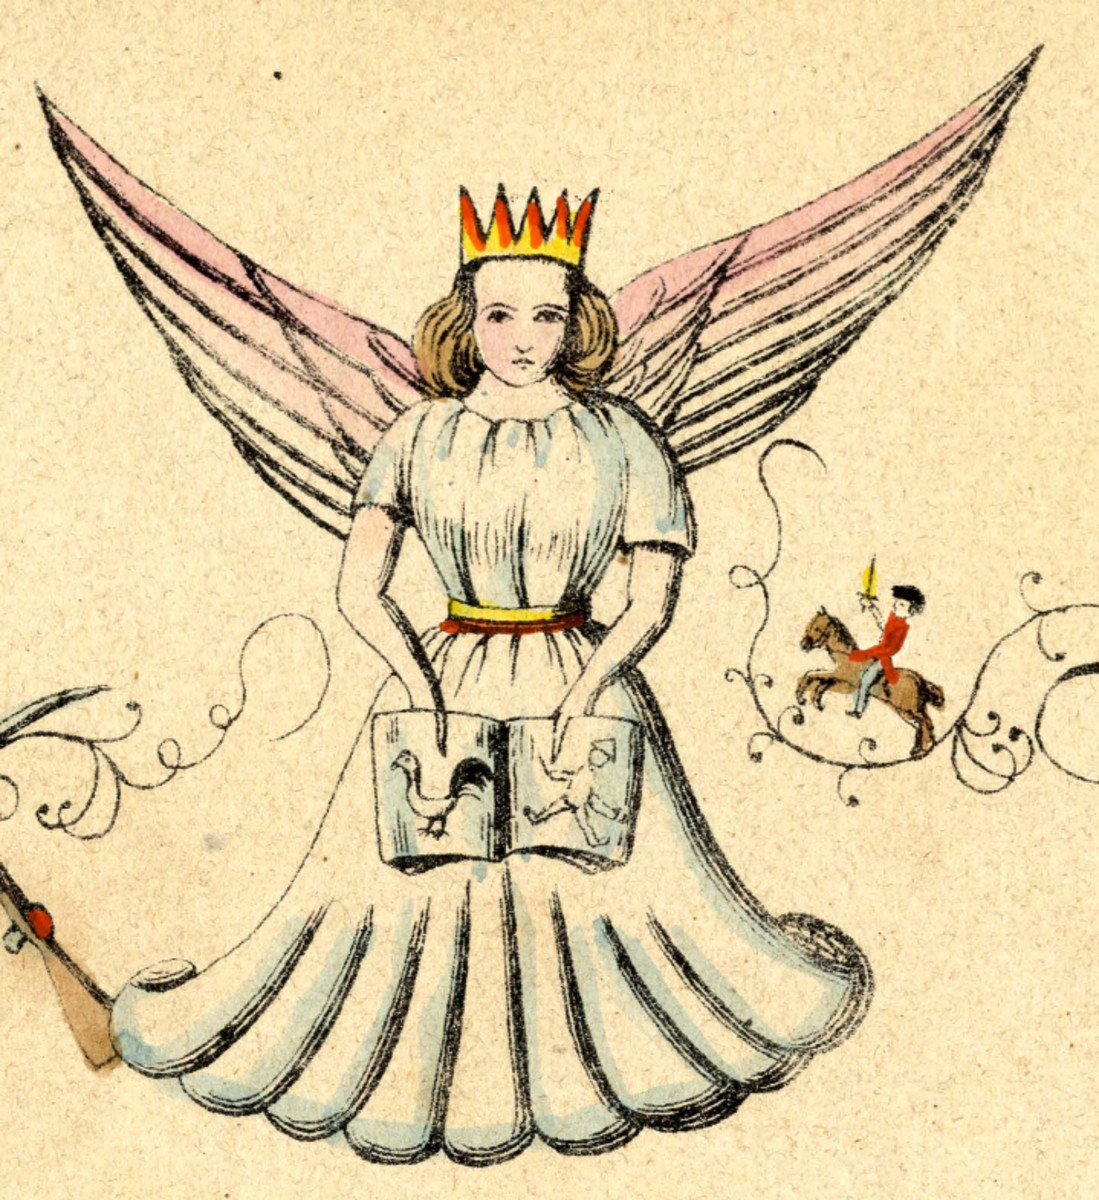 The Christkind as depicted in the famous German 1845 children's book Der Struwwelpeter